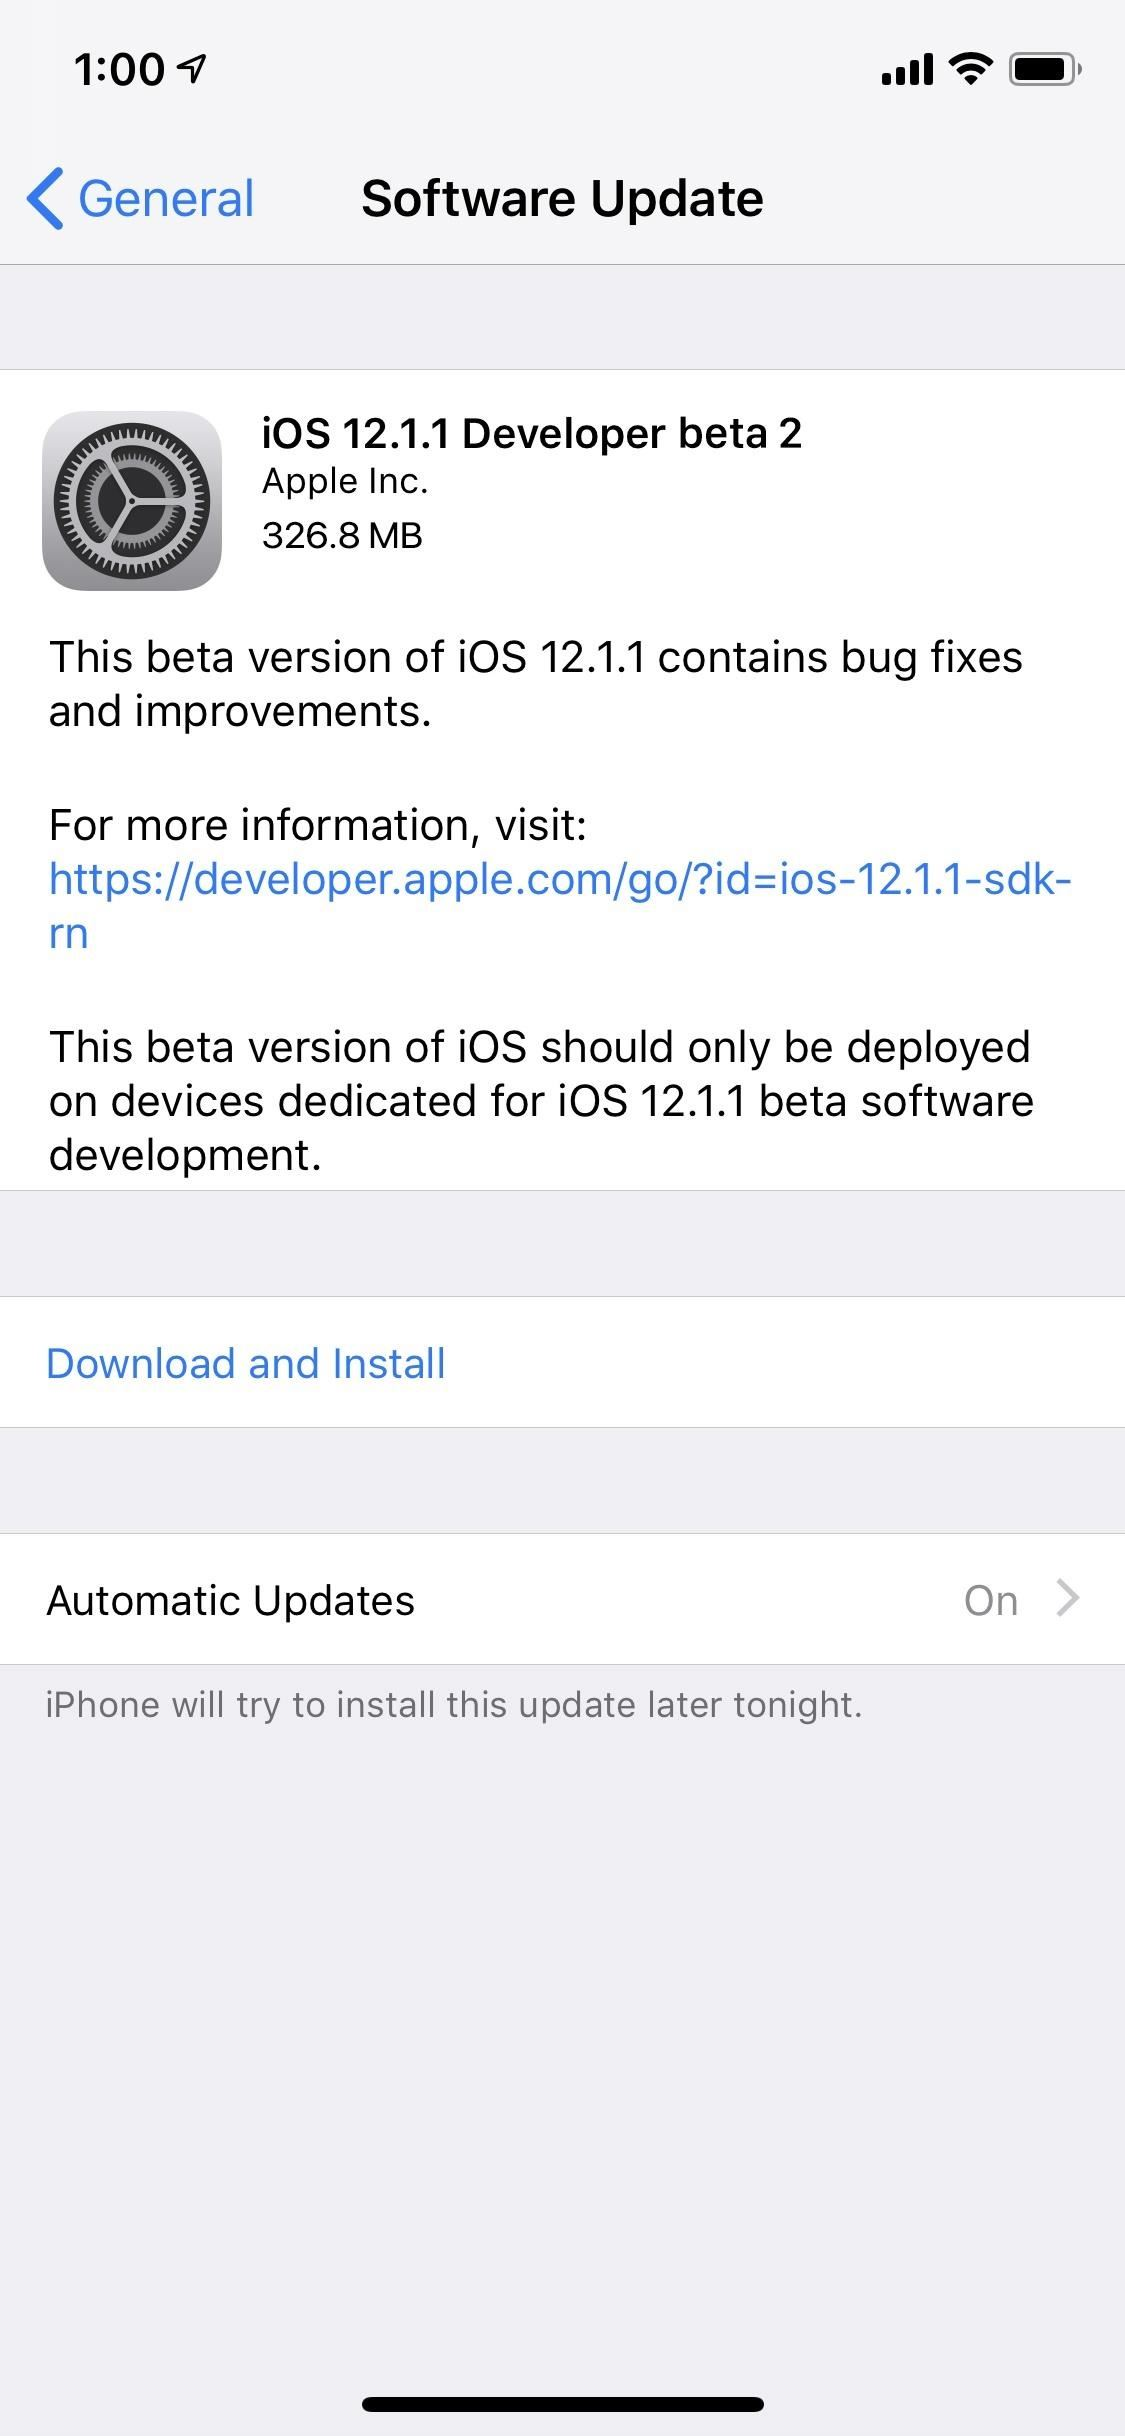 Apple just released iOS 12.1.1 Beta 2 to developer